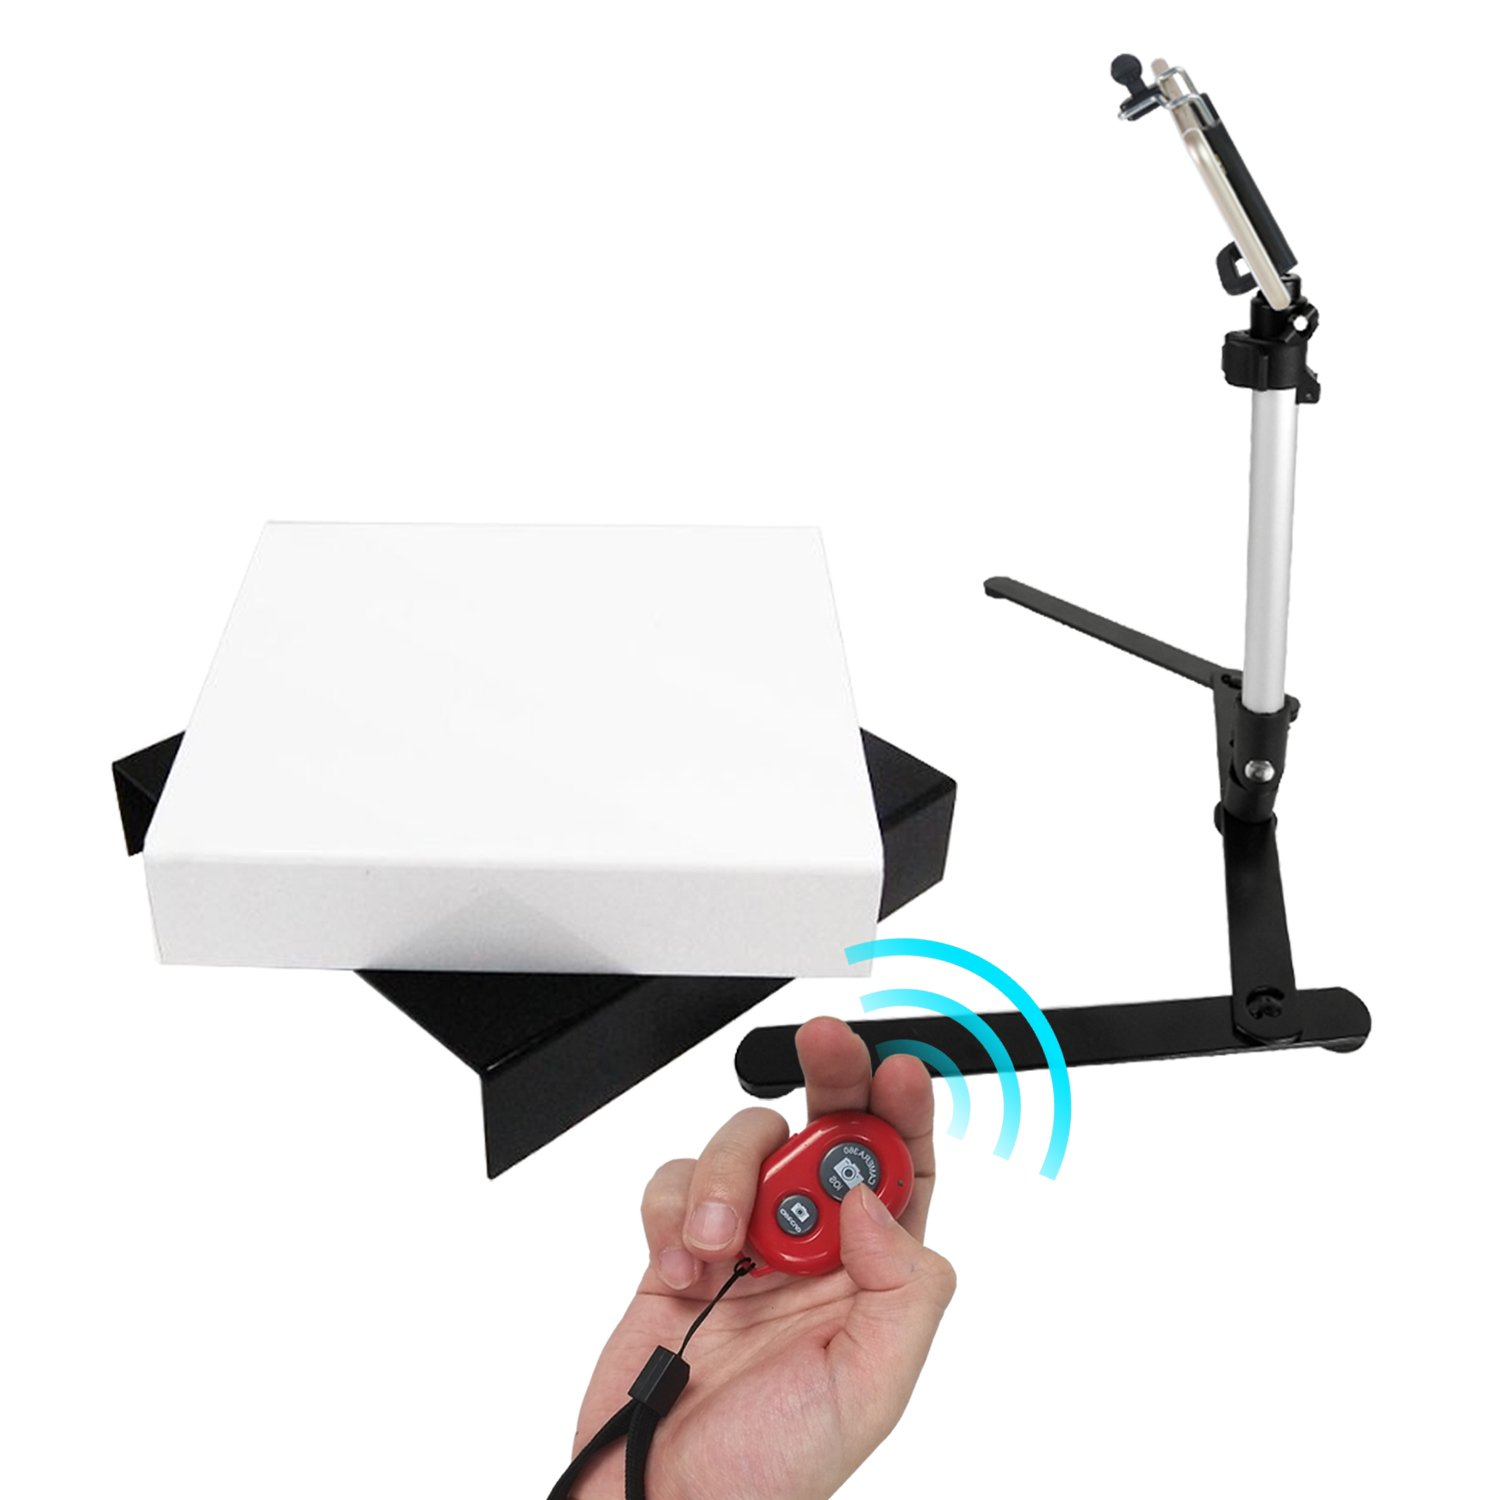 "Julius Studio Black & White Acrylic Riser Display Table Set with 17"" Mini Table Top Light Stand, Cellphone Holder Adapter, and Red Wireless Bluetooth Remote Control Shutter, JSAG434 by Julius Studio"